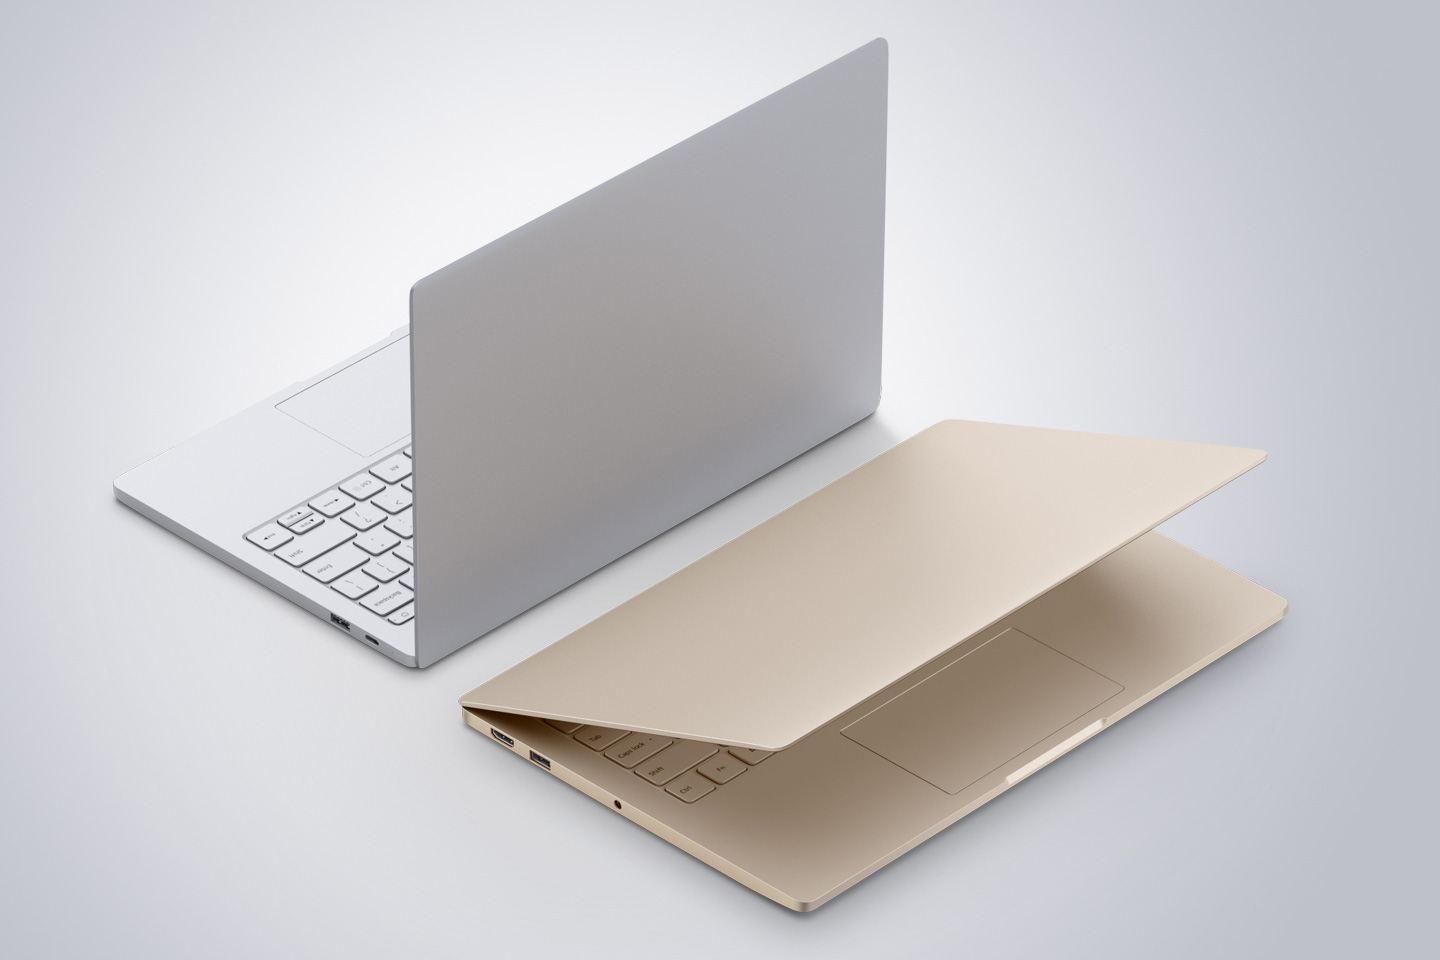 Xiaomi Mi Notebook Air 12.5 e 13.3: specifiche, immagini e video